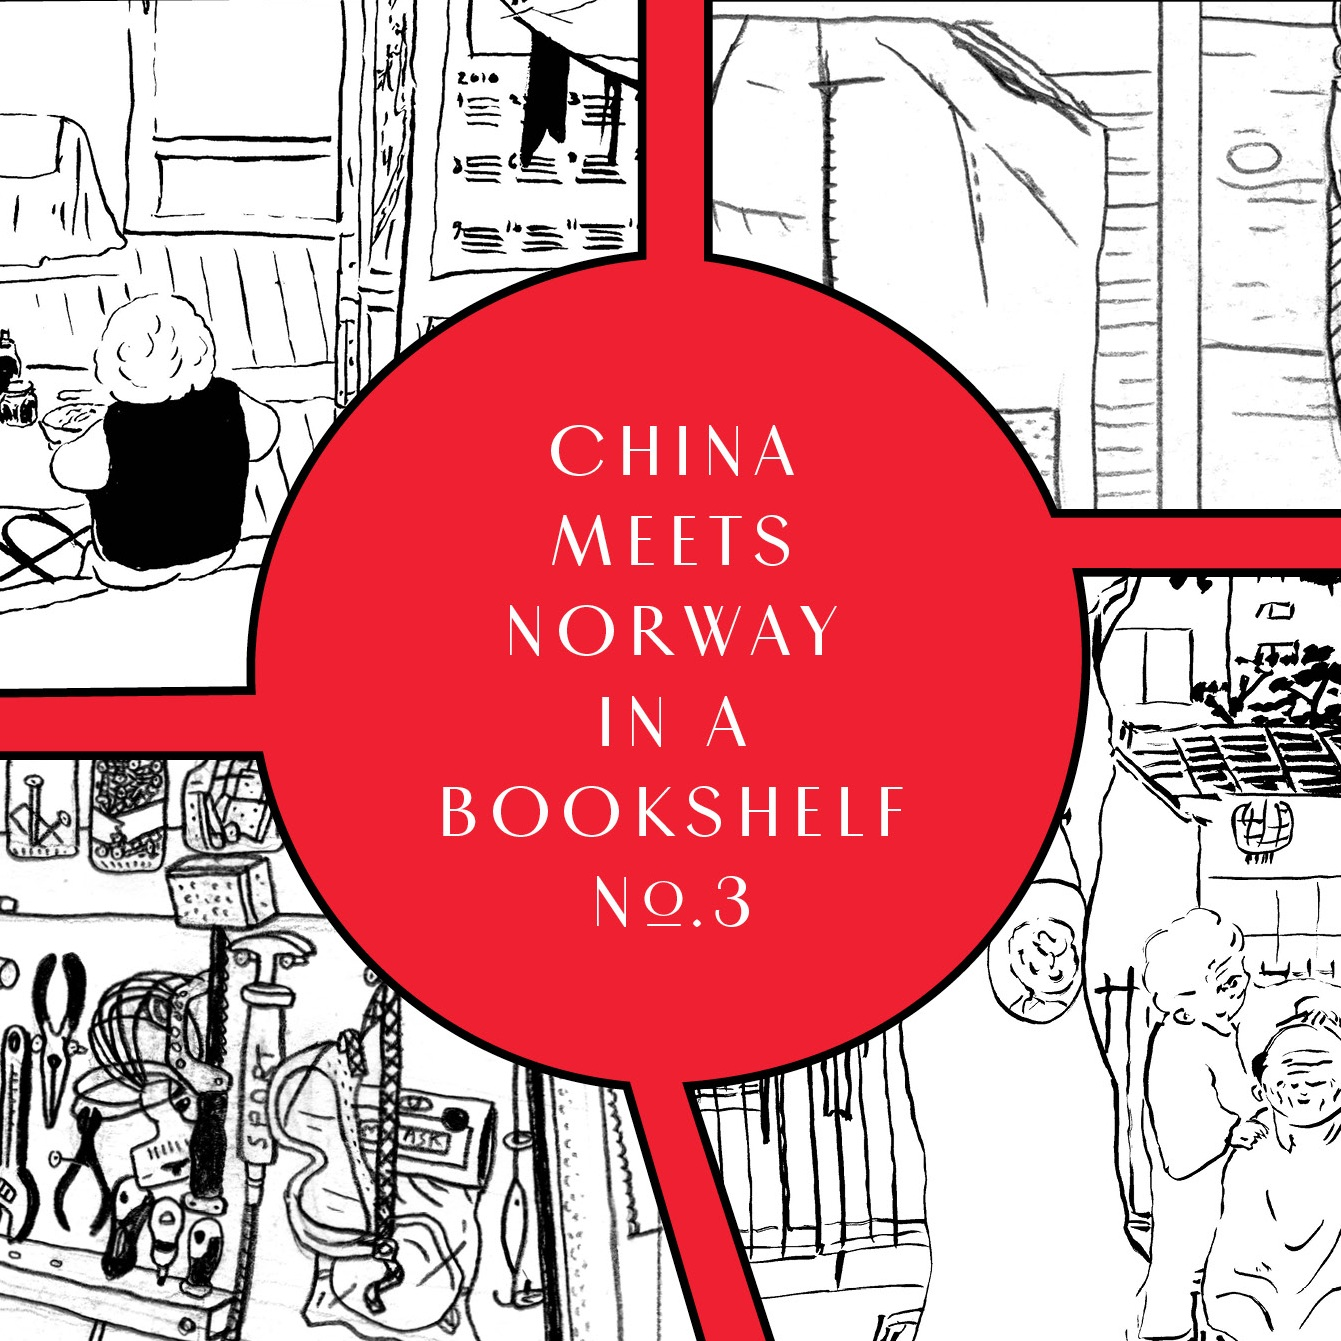 CHINA MEETS NORWAY IN A BOOKSHELF No.3